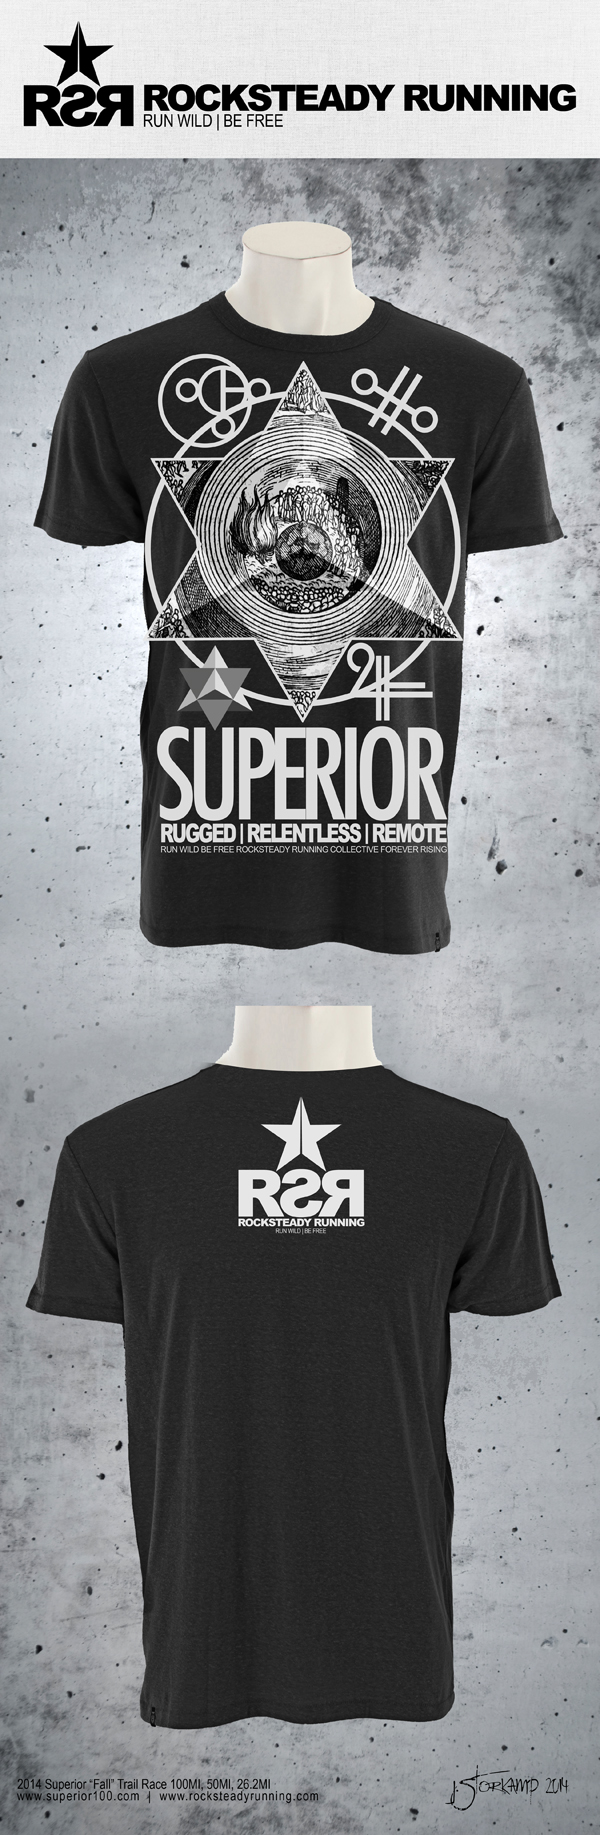 2014 Superior Fall Merged Stacked 600pxW Mockup 8-14-14